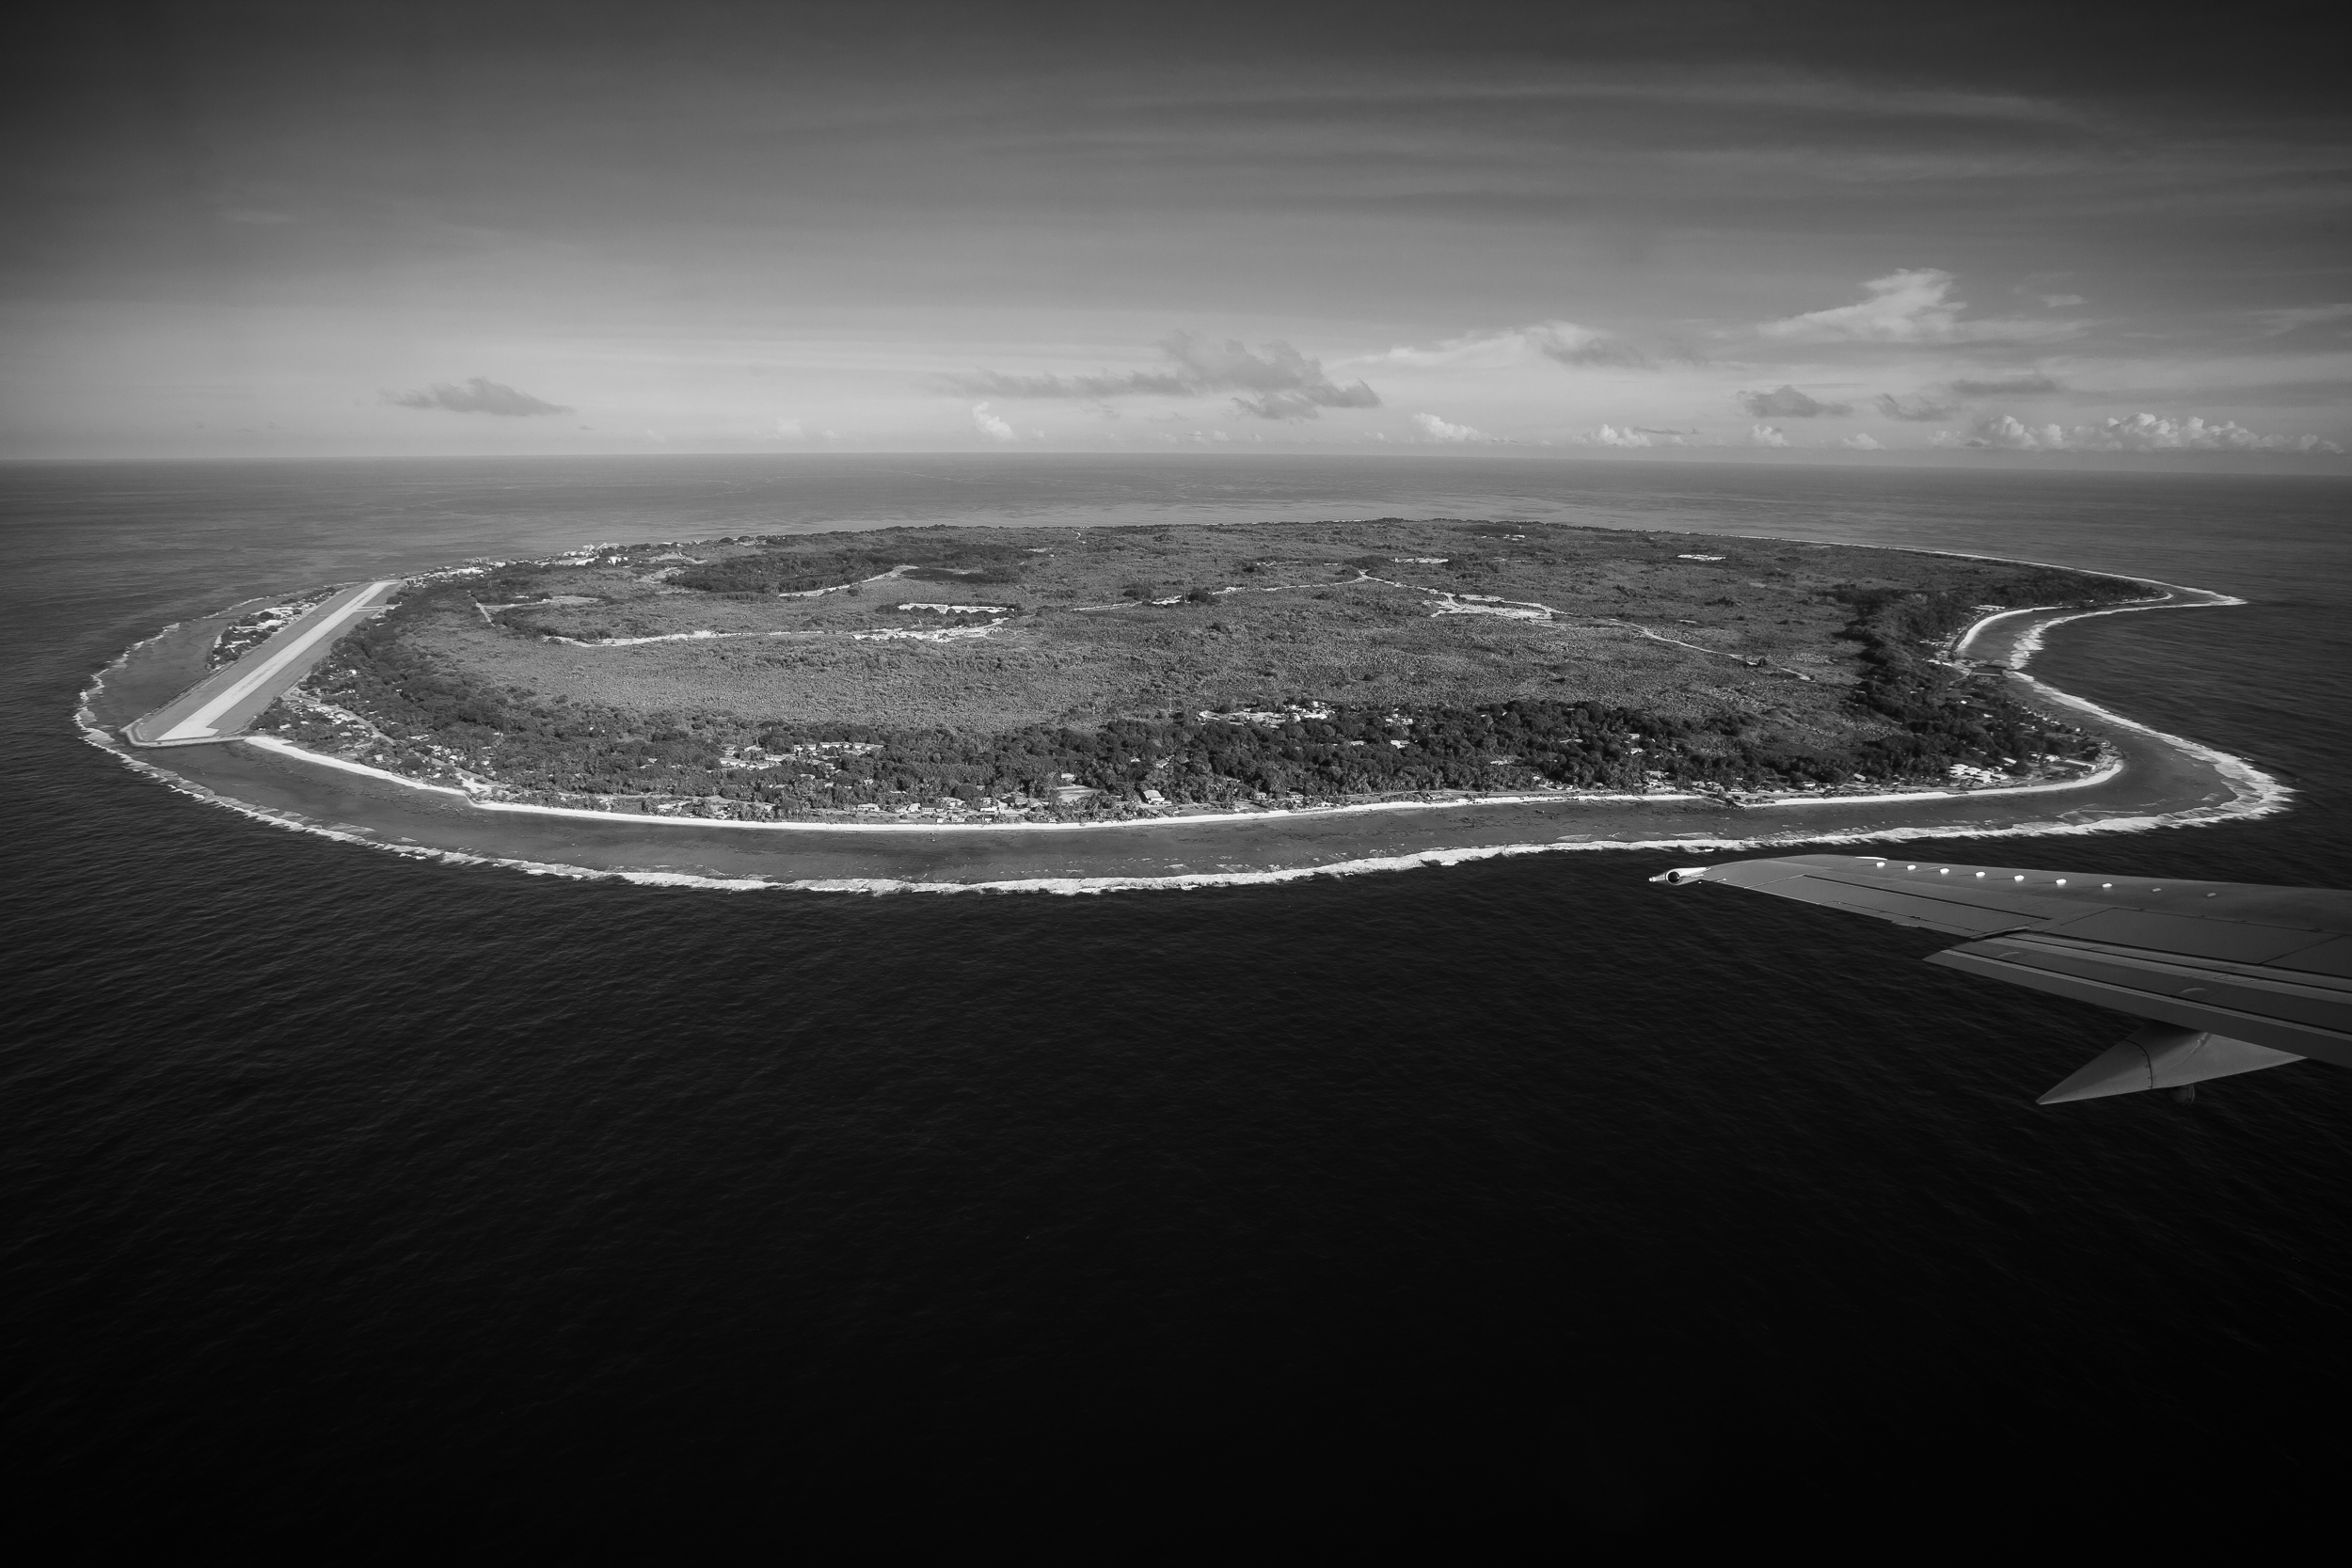 Nauru is the smallest republic in the world, home to approximately 10,000 people and around 1000 foreign refugees. Most of these refugees are held in the harsh centre of the island within three Australian detention centres.